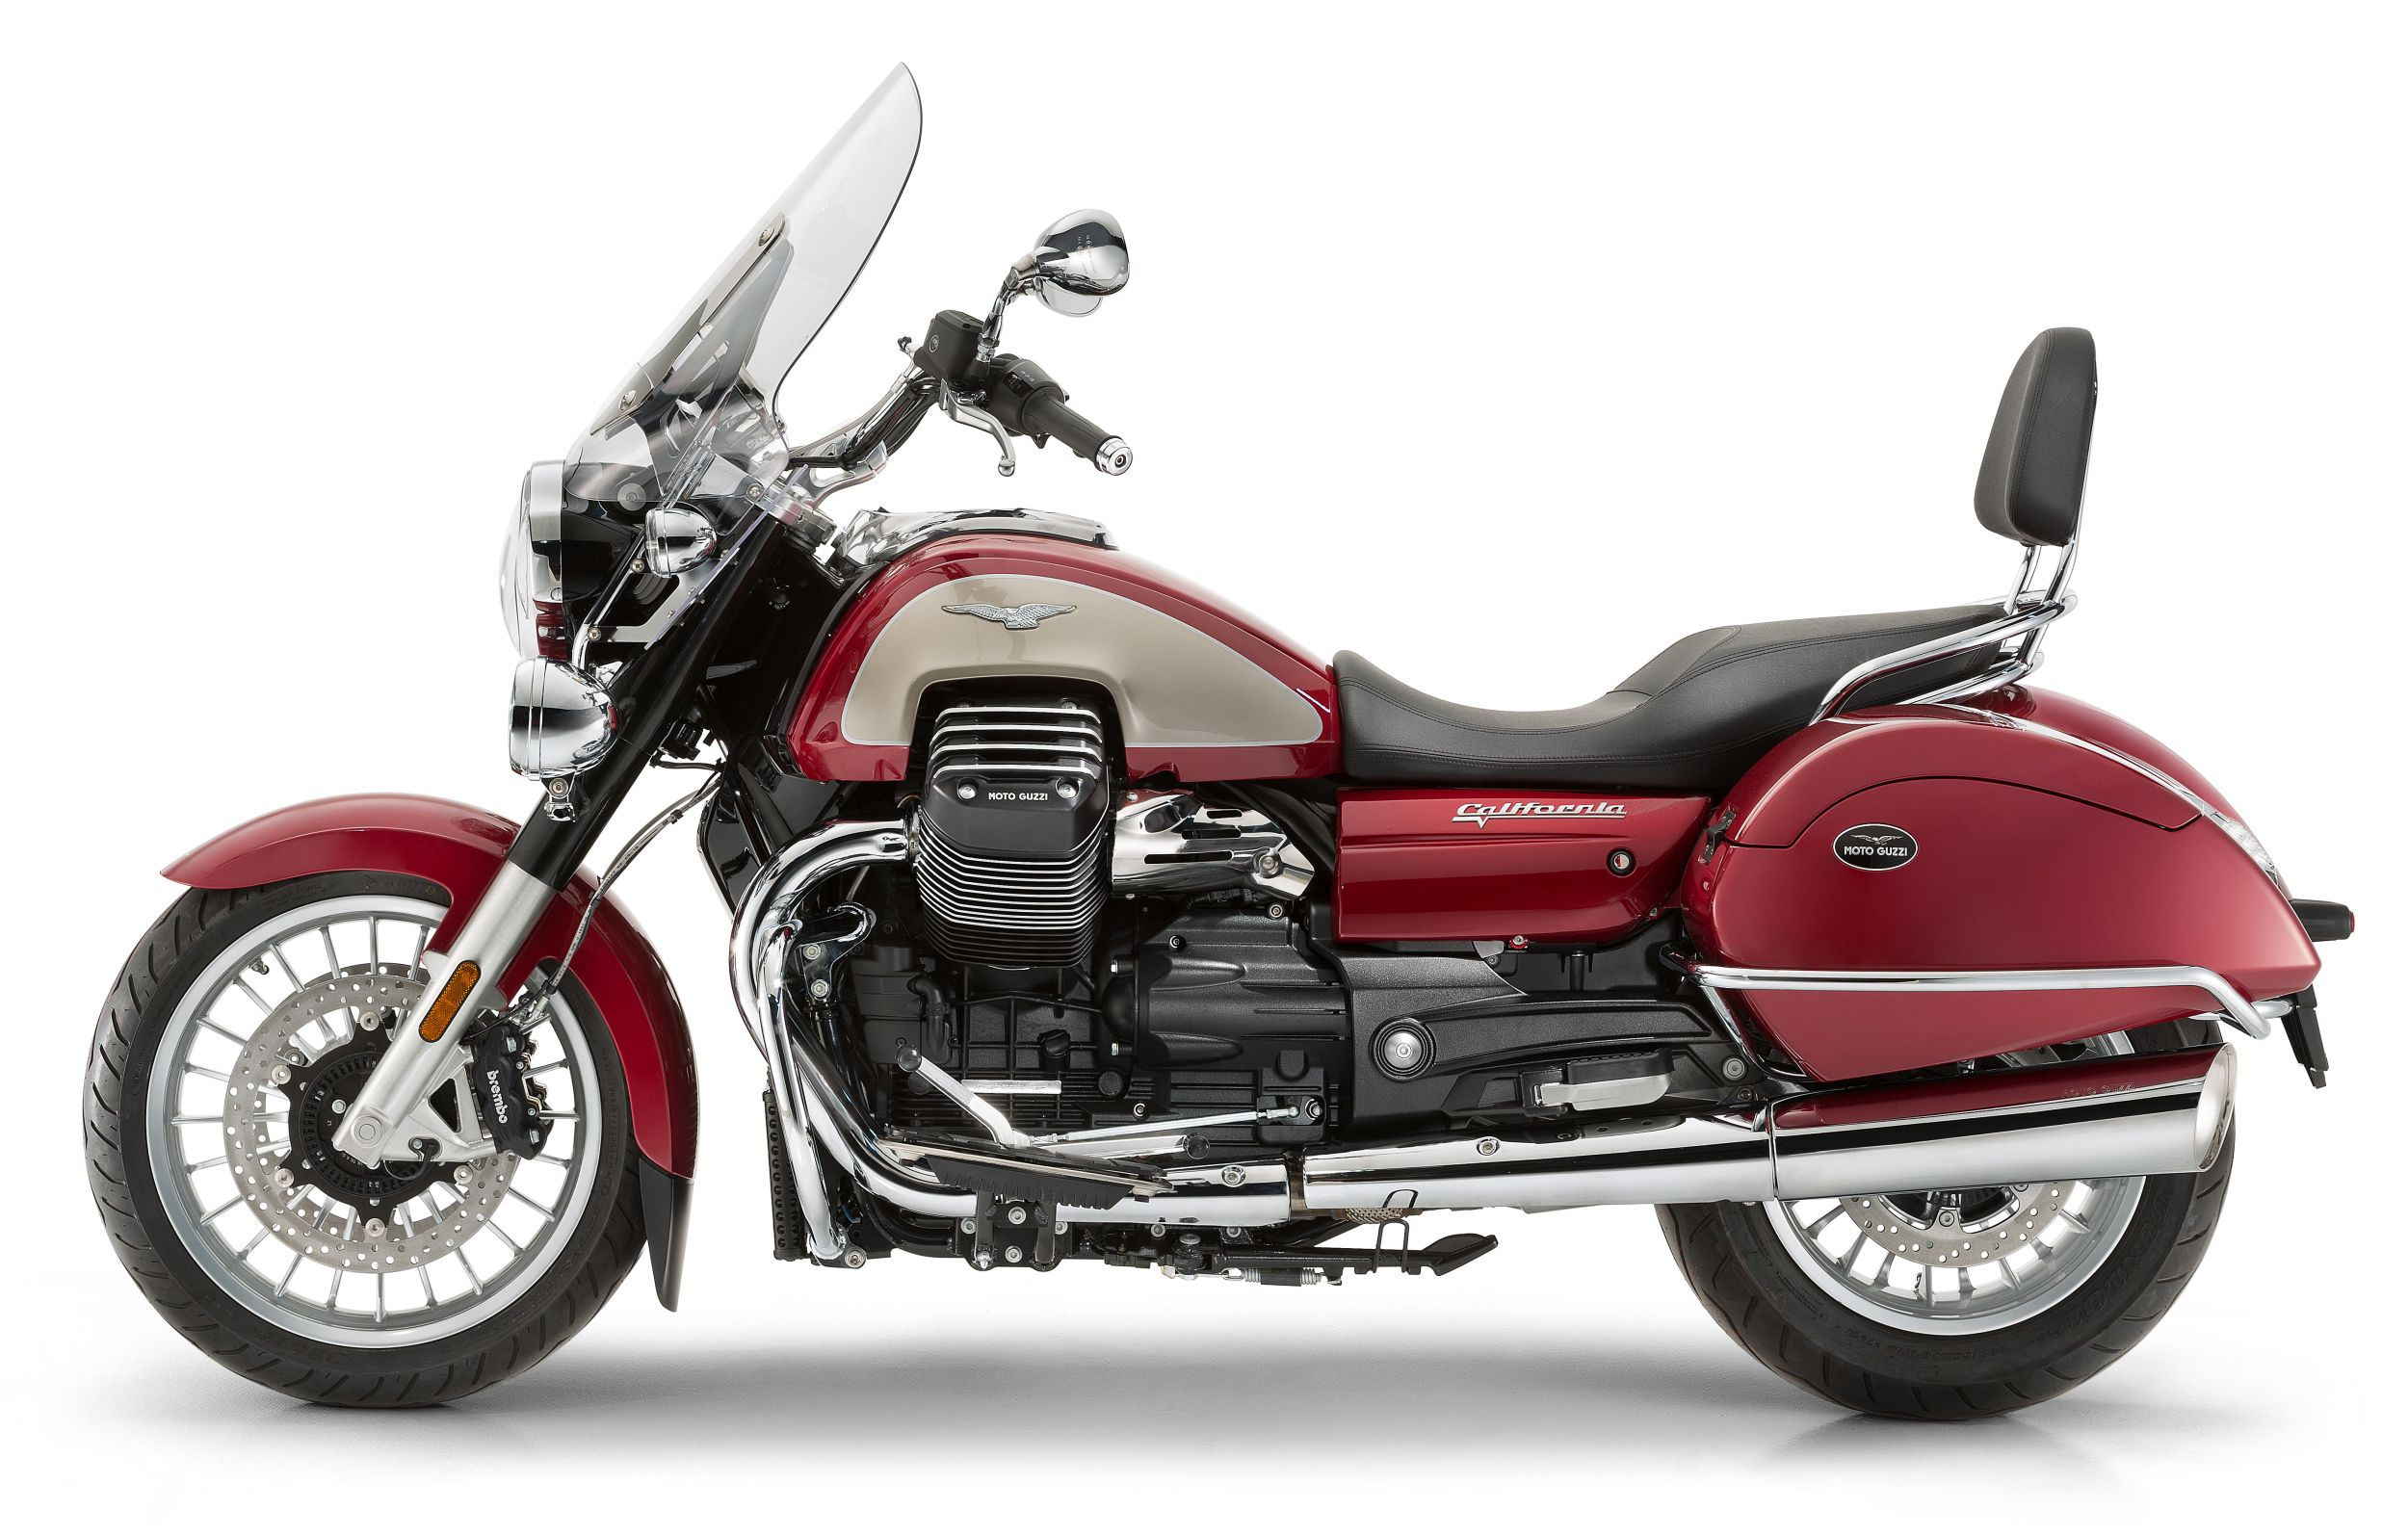 gebrauchte moto guzzi california 1400 touring se motorr der kaufen. Black Bedroom Furniture Sets. Home Design Ideas